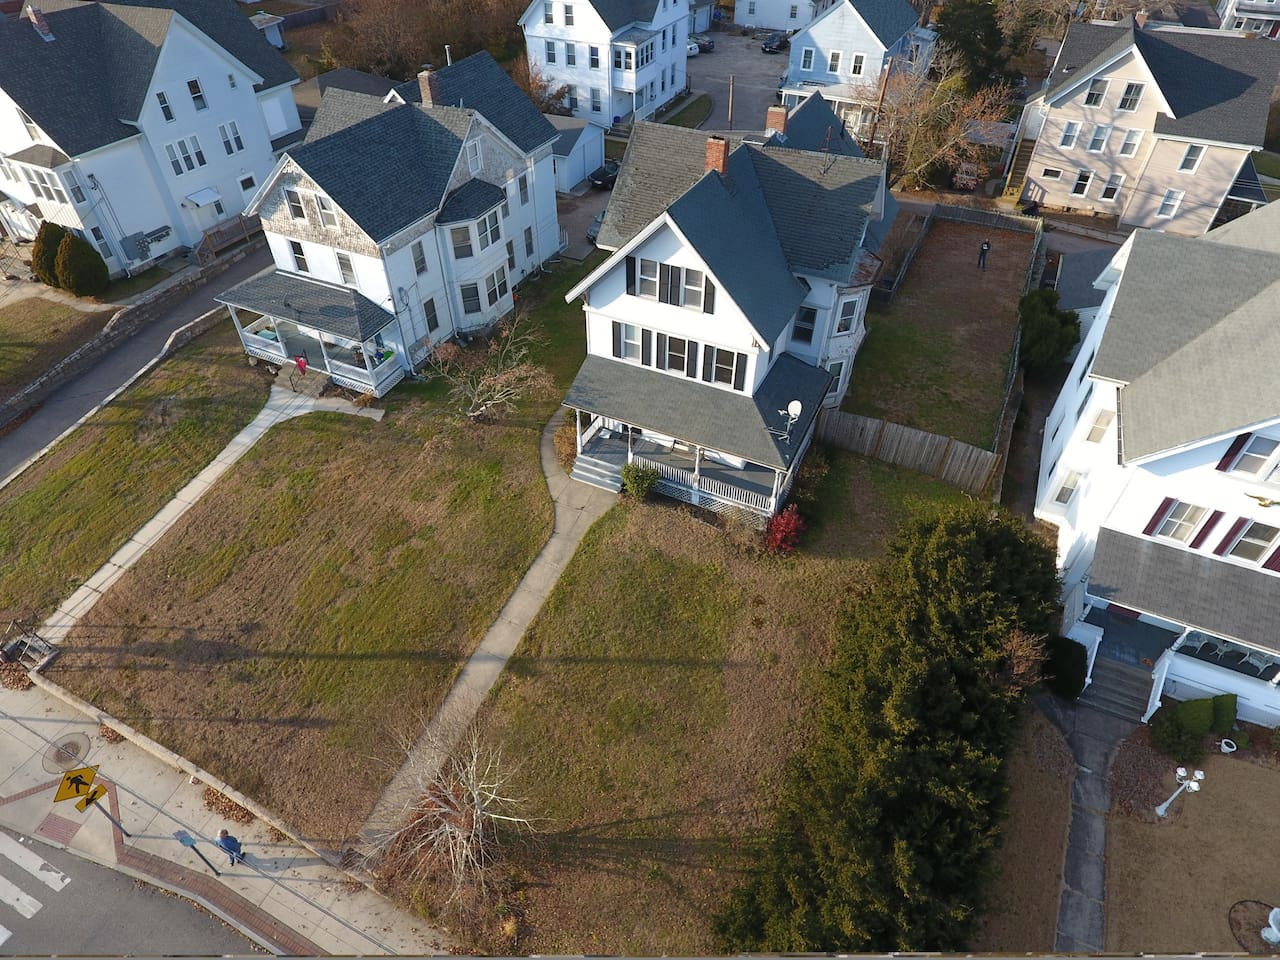 Our house from above